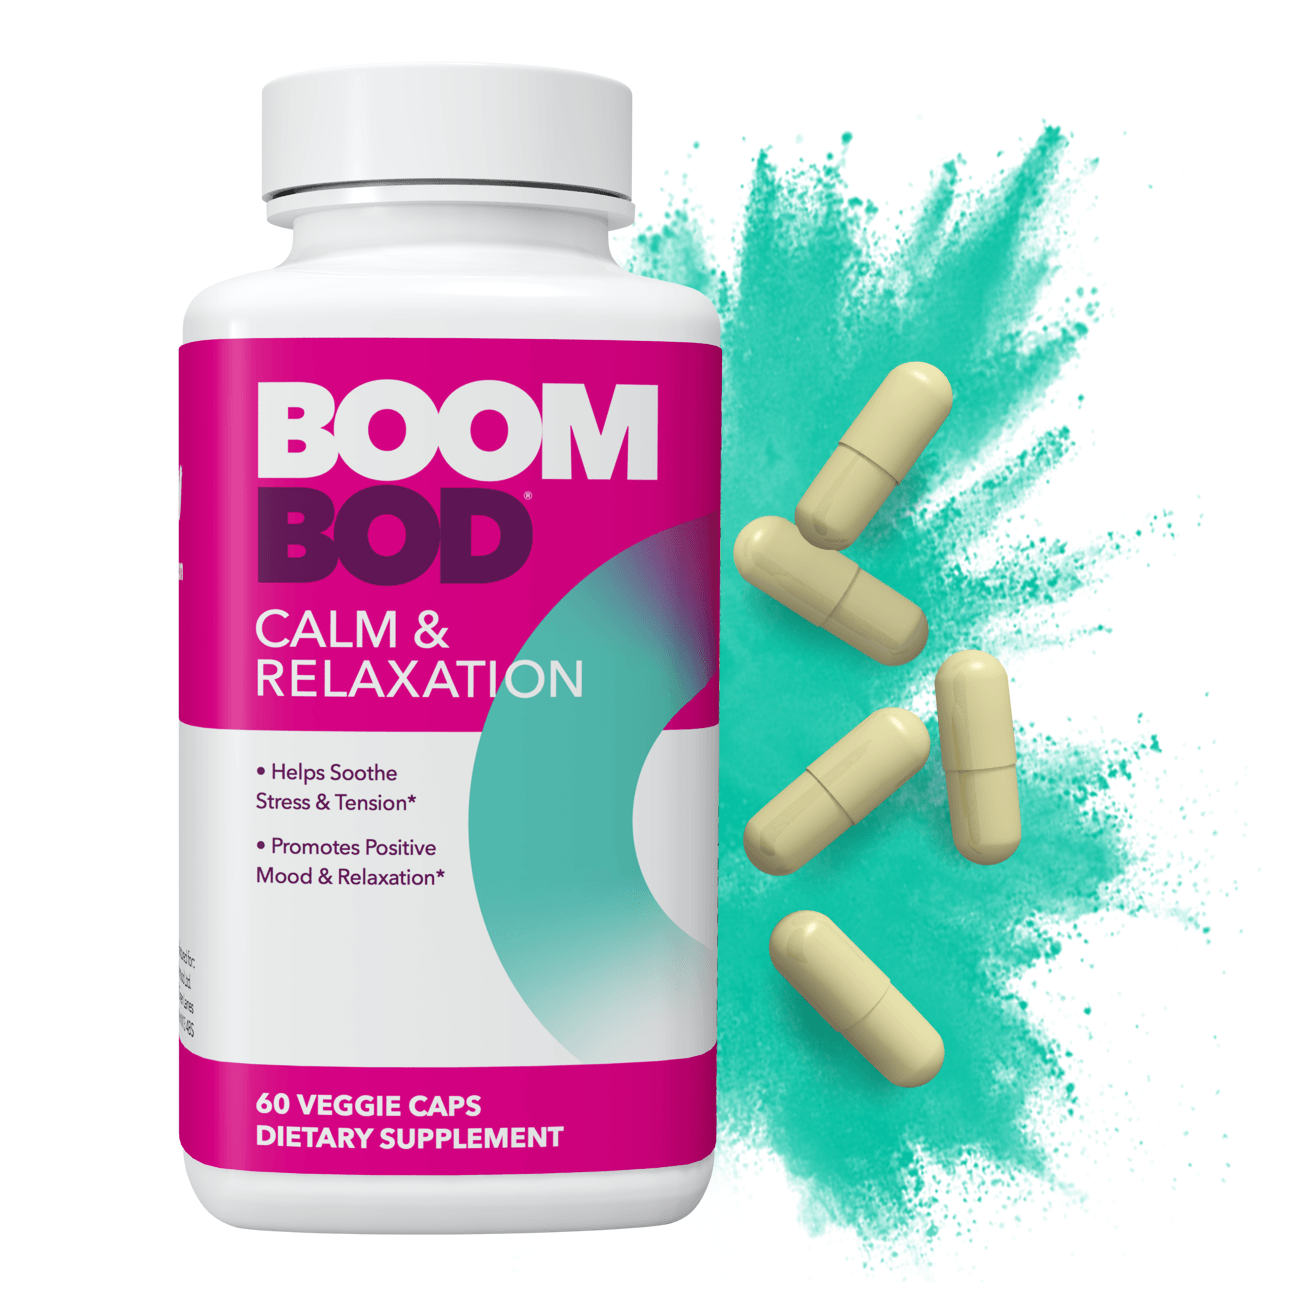 Boombod | Calm & Relaxation Supplement | 30 Day | 60 Count